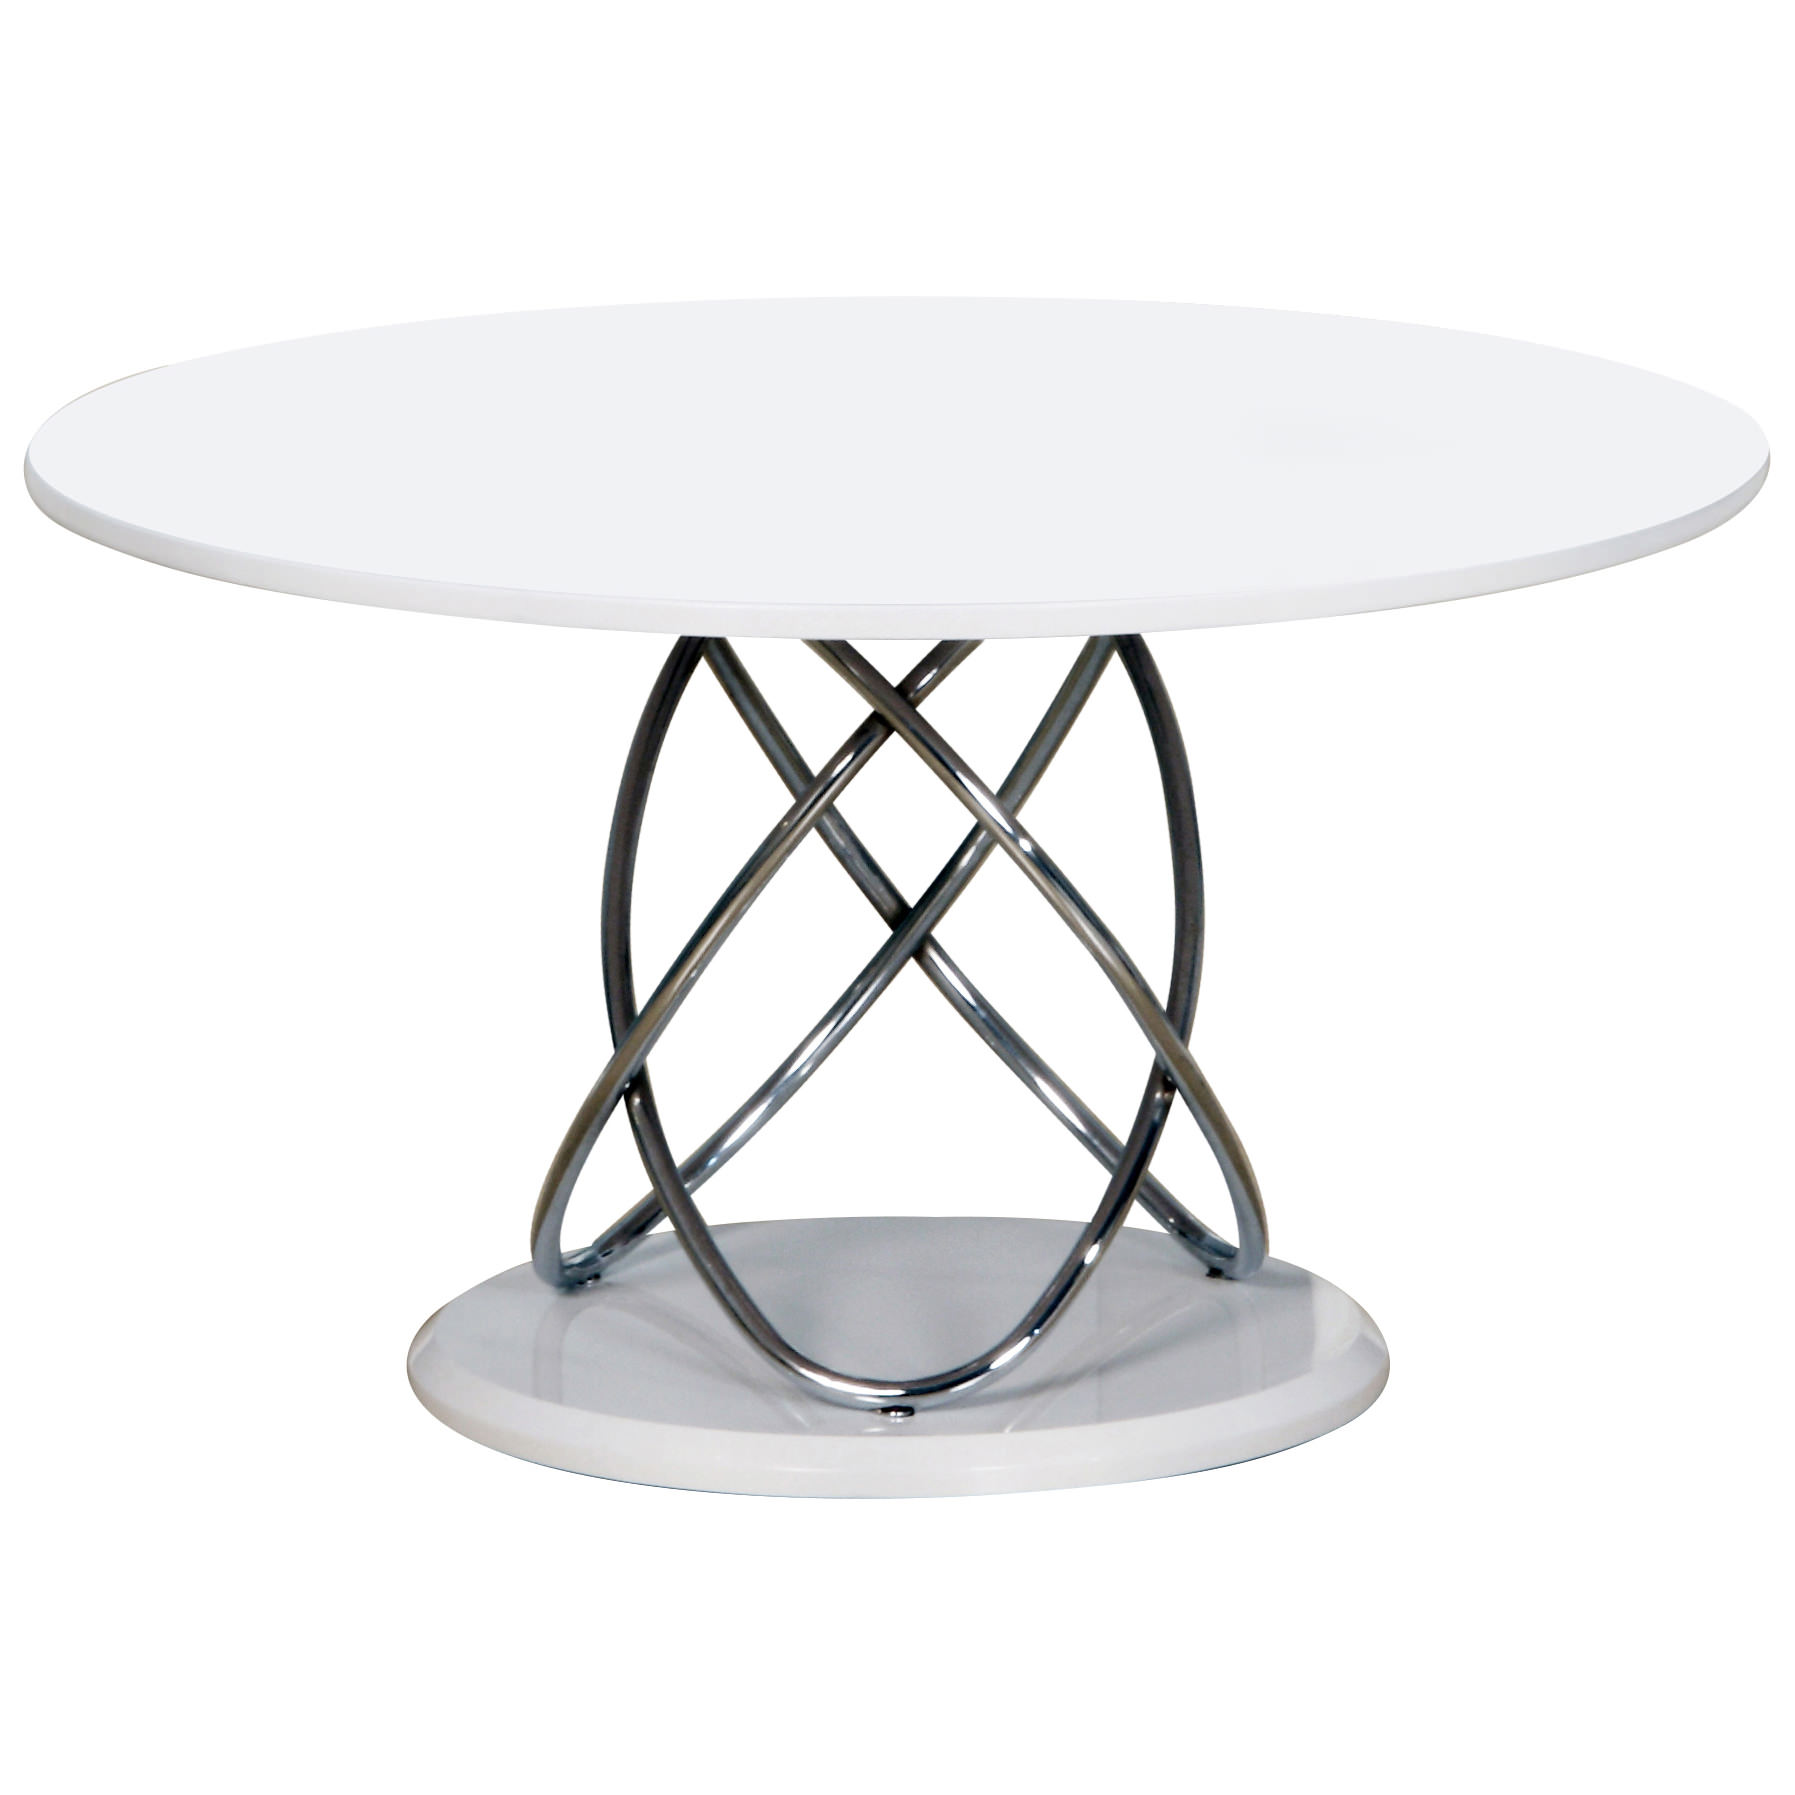 Chrome glass metal oval coffee table clear black white for Oval glass coffee table